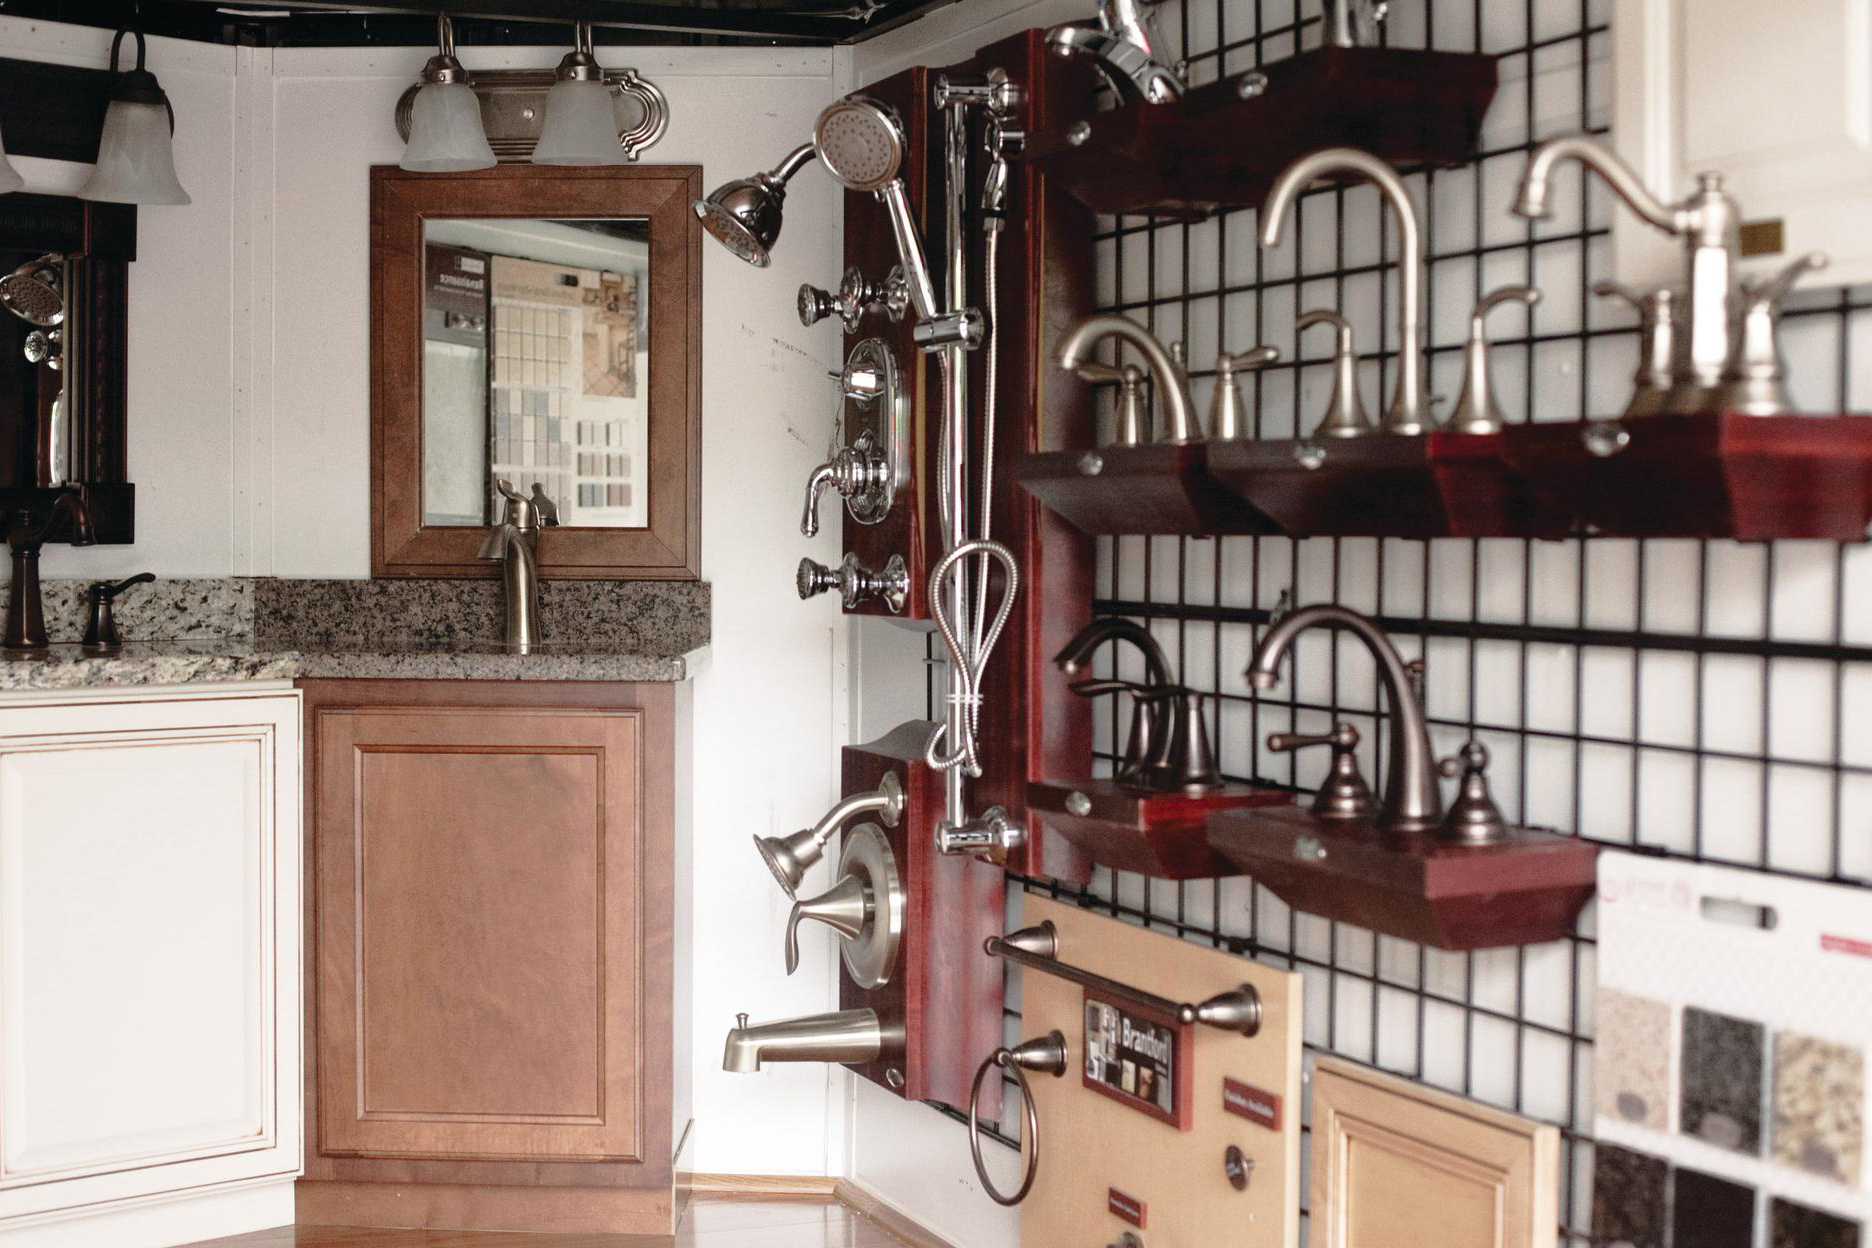 Catering To Convenience Fast Turnaround Bathrooms Serve A Niche Market Remodeling Bath